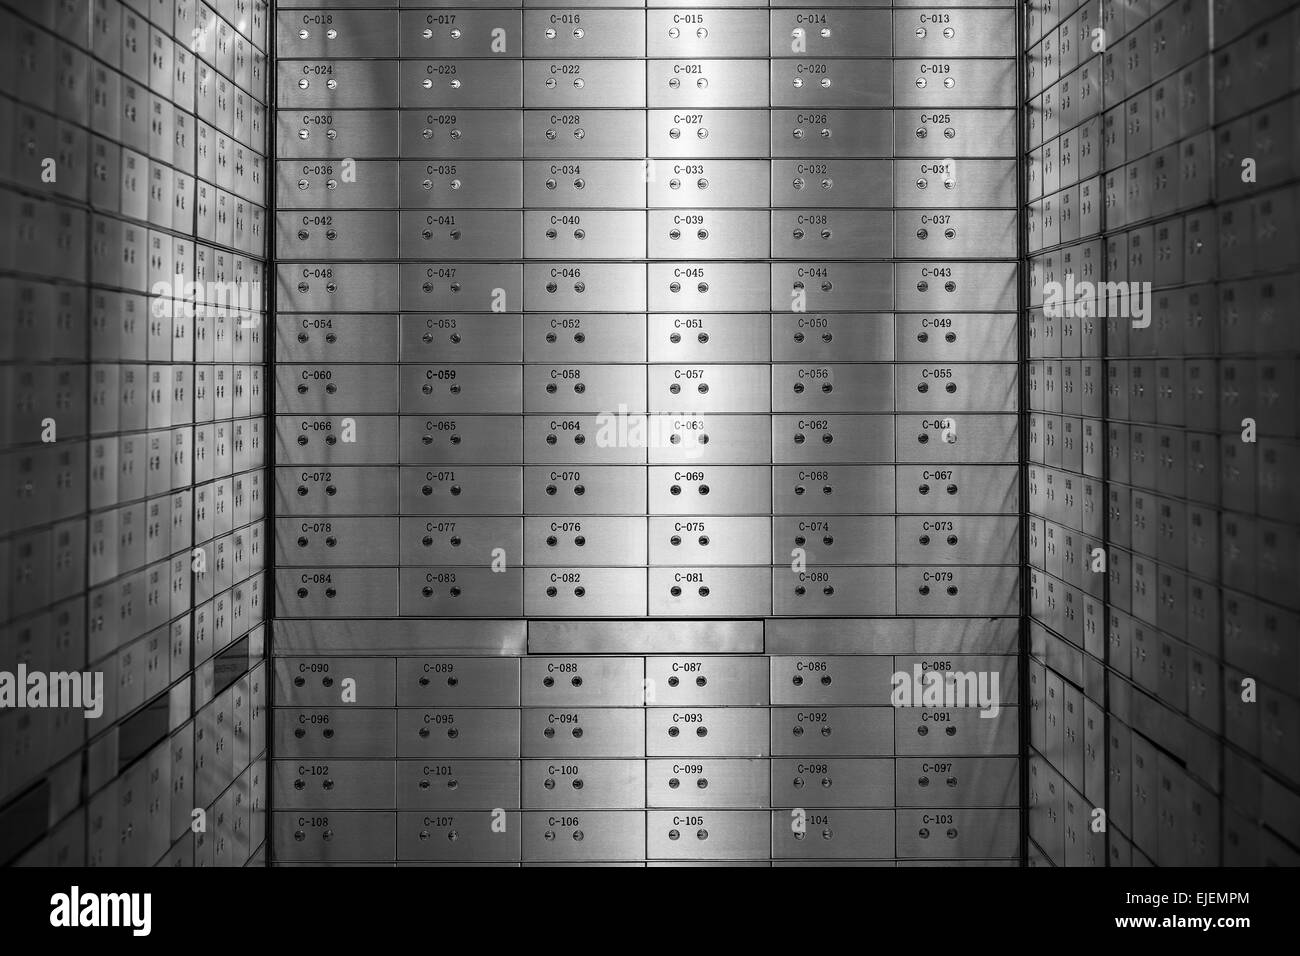 A room full of safety deposit boxes in a bank vault - Stock Image